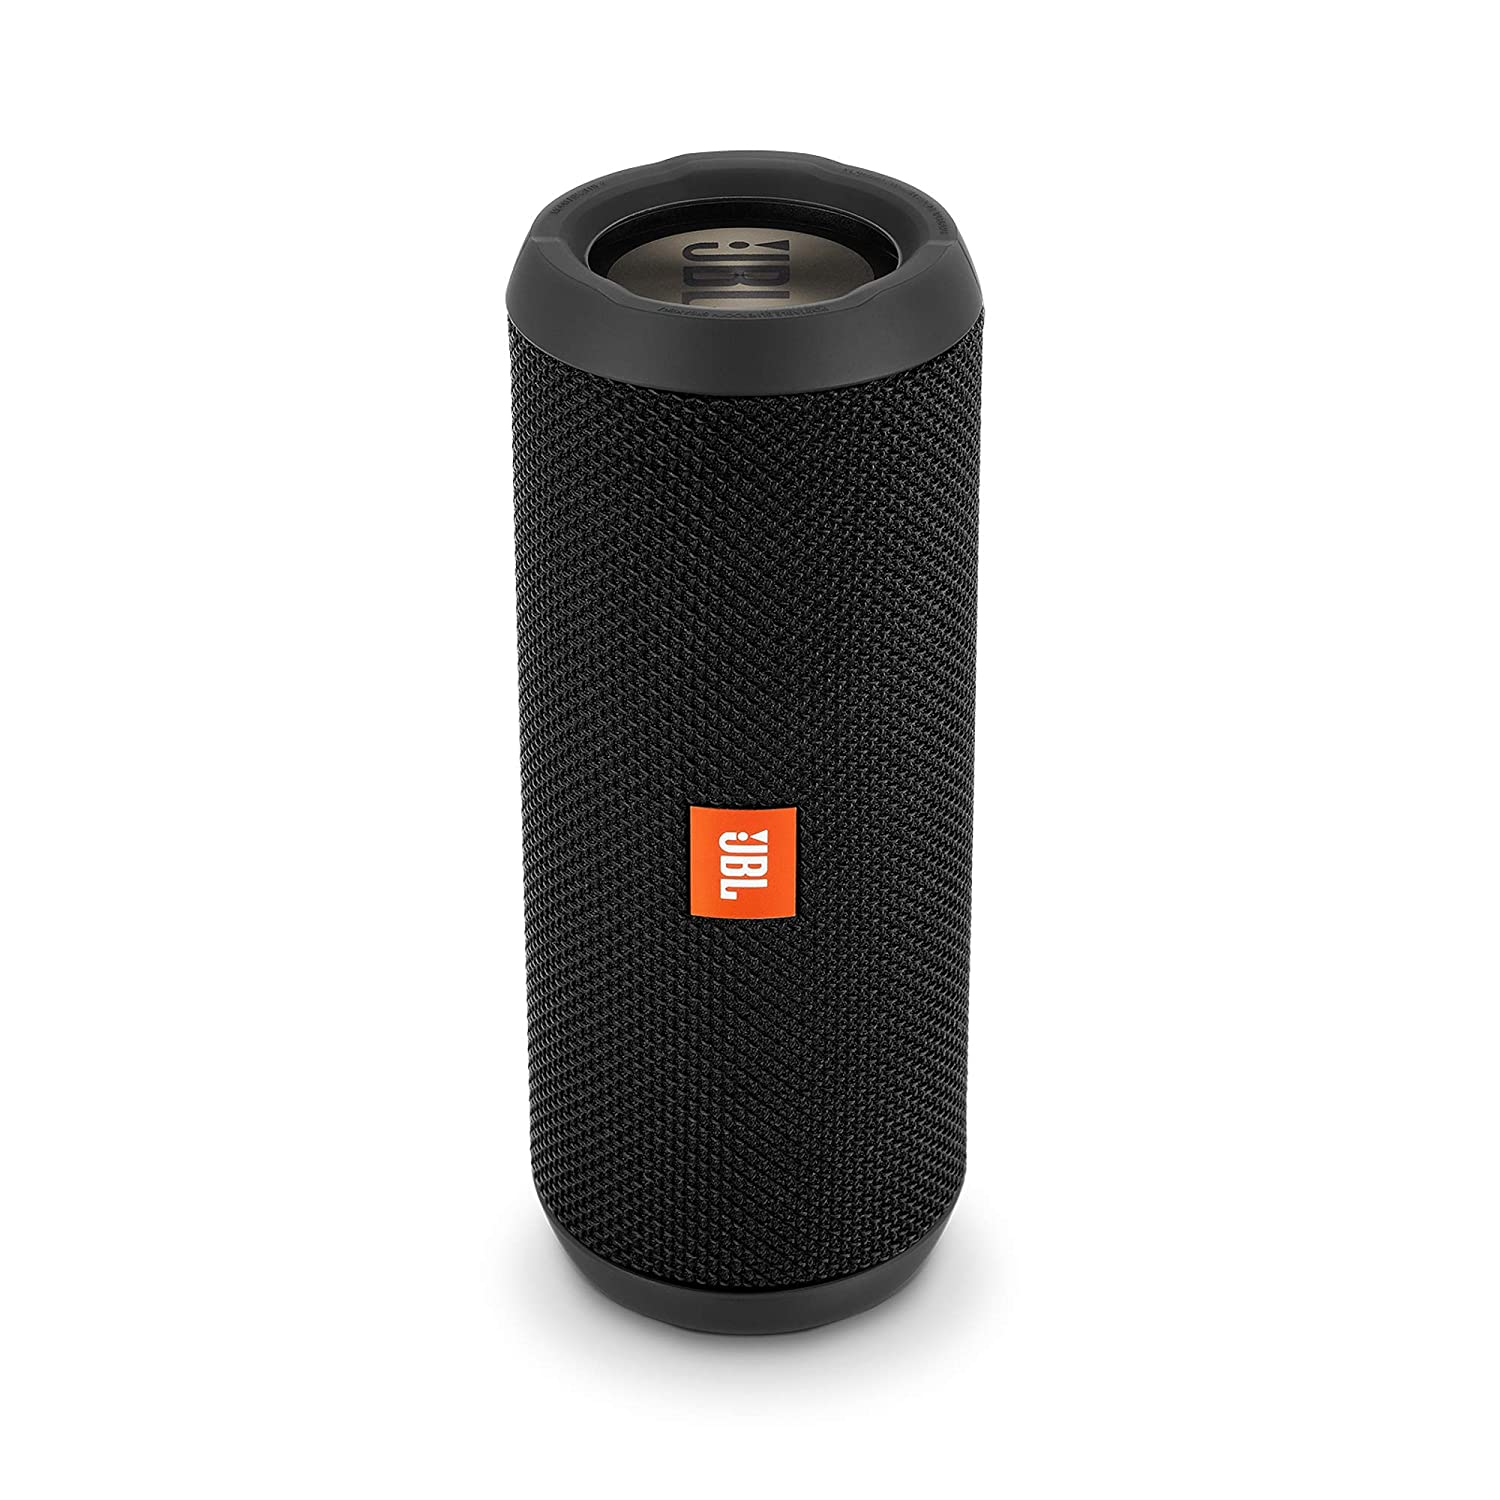 For 4399/-(45% Off) JBL Flip 3 Stealth Waterproof Portable Bluetooth Speaker with Rich Deep Bass (Black), Without Mic at Amazon India